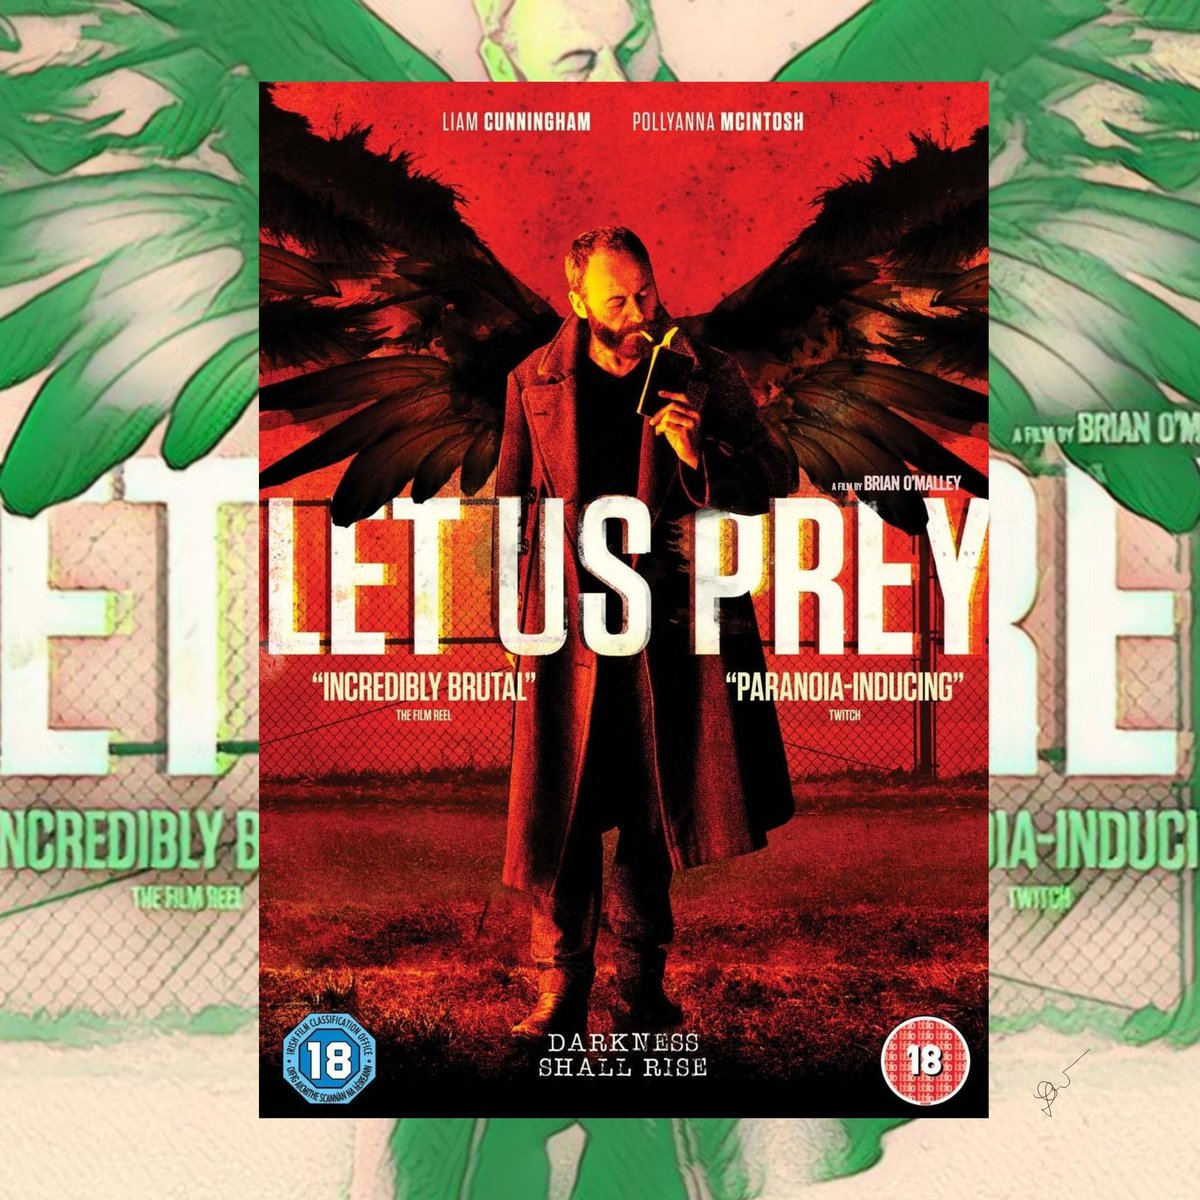 Let Us Prey is a delight for horror and suspense fans. A slow burner, it has a lot to offer and it's greatly satisfying.8/10 http://myowneternalsunshine.blogspot.com/2020/05/let-us-prey-2014_29.html… #WhatToWatch #filmreview #filmreviews #moviereview #moviereviews #filmbuff #filmjunkie #horrorjunkie #thriller #horrormoviepic.twitter.com/Q8OOMODBqd